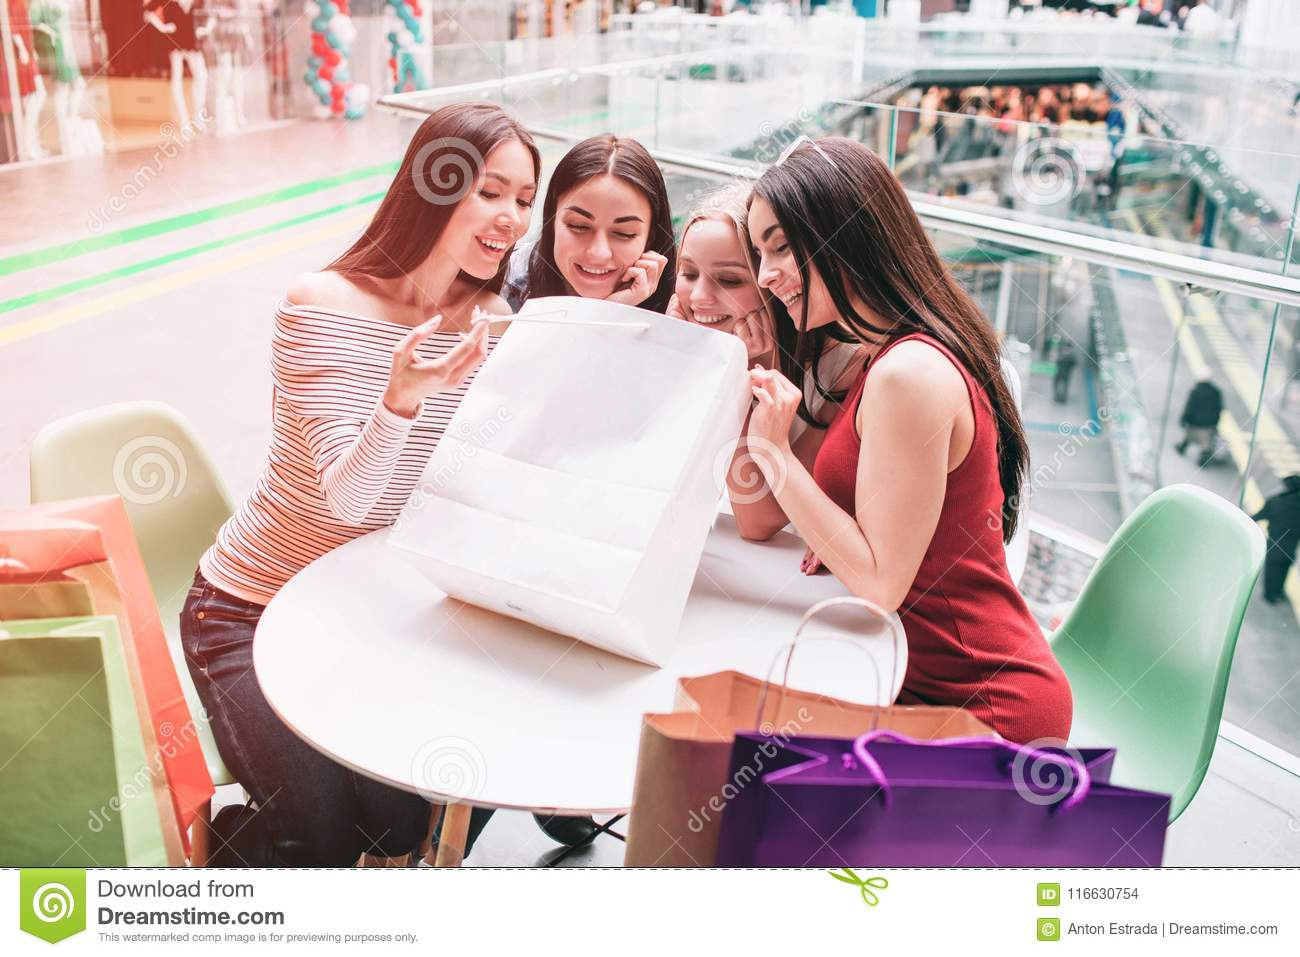 Girls are sitting at the table and looking into shopping bag. They are happy and very excited.